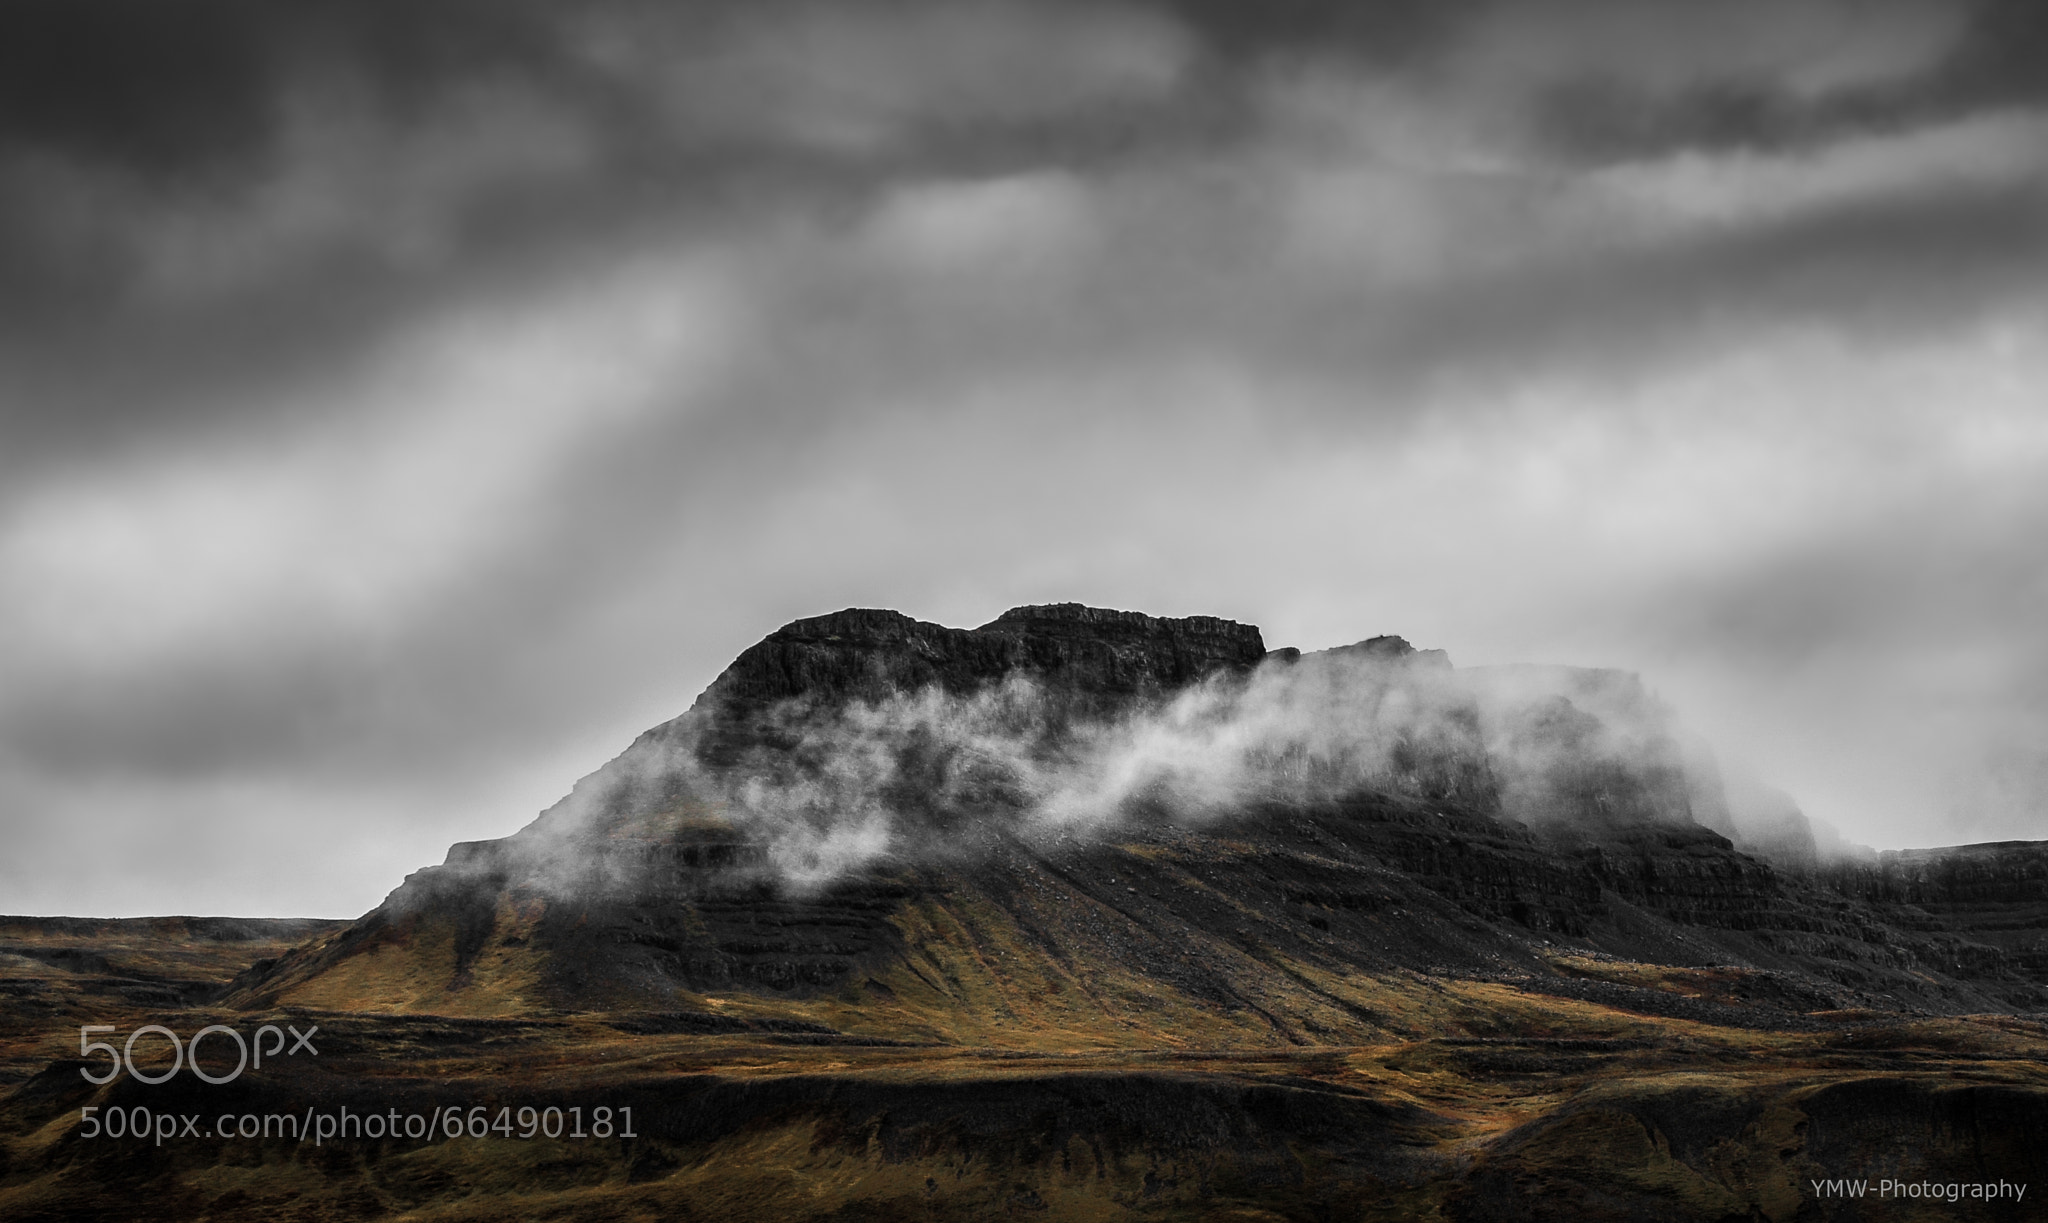 Photograph my Iceland XI - draped in clouds by yoshiko wagner on 500px